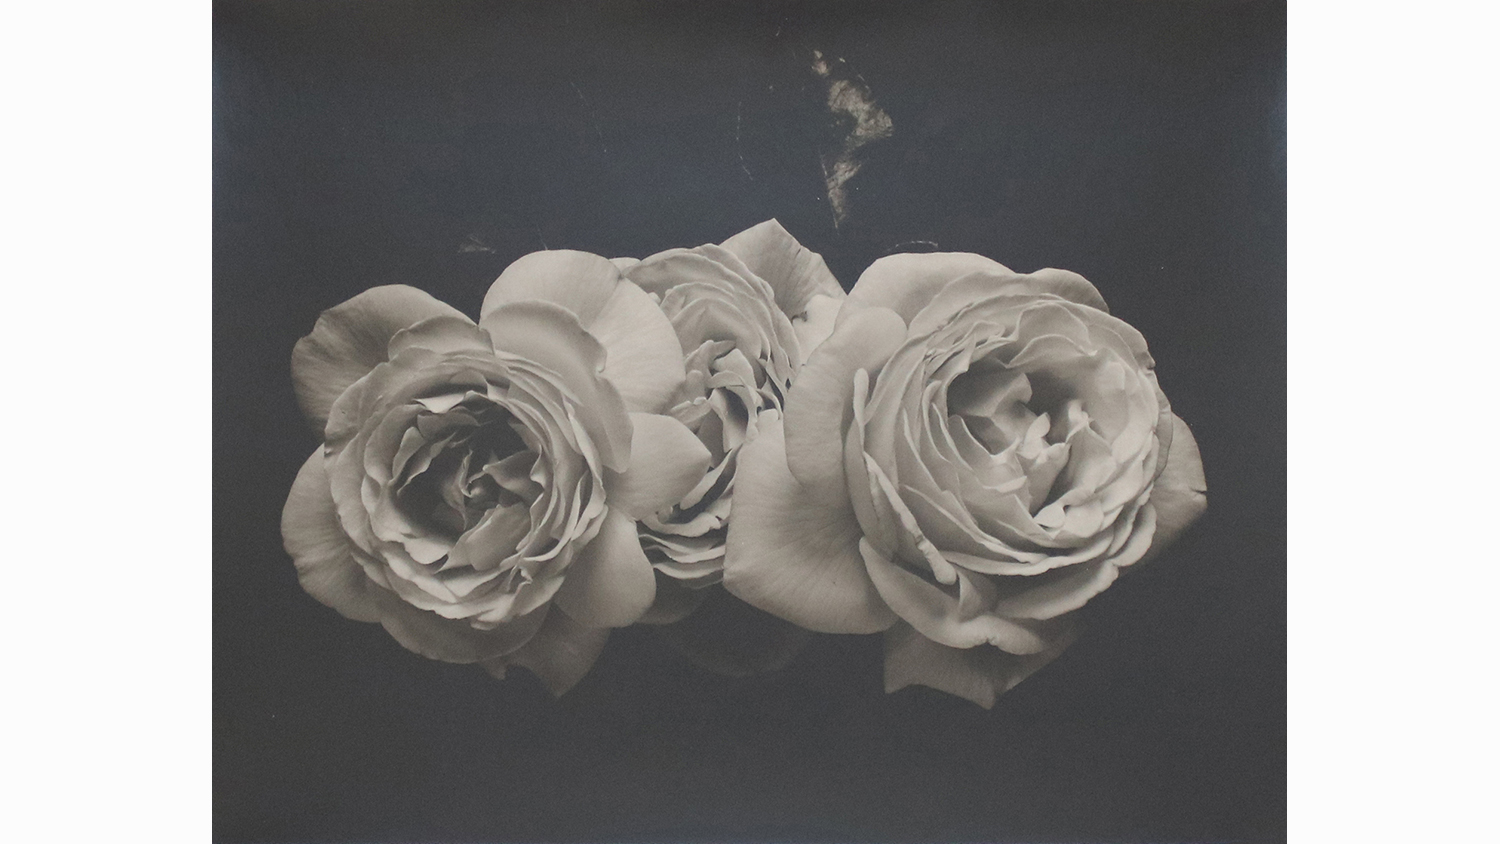 THREE ROSES, UNFRAMED £600